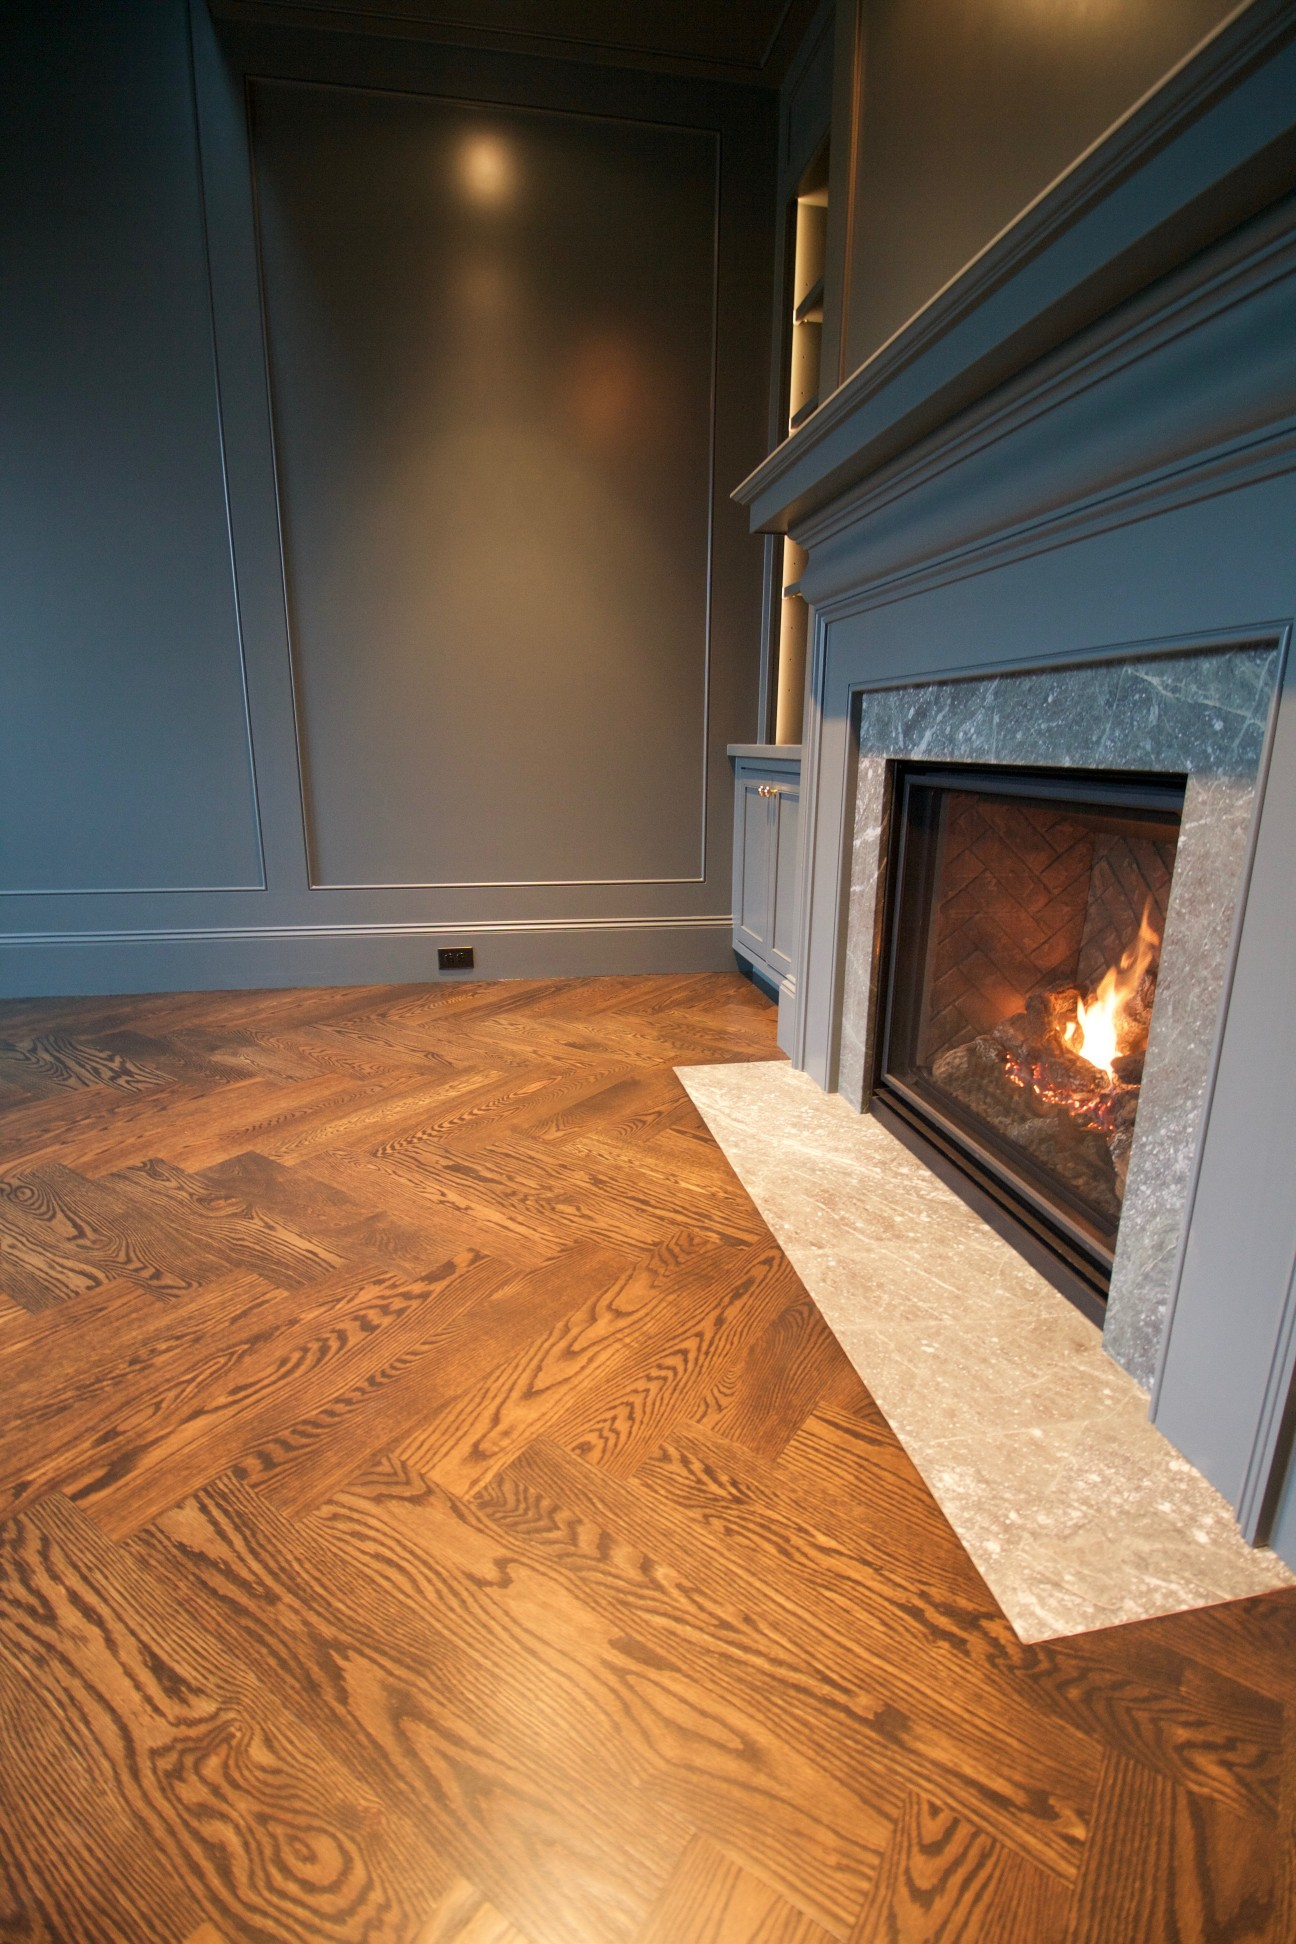 Hardwood Floor Pictures Examples Of Our Wood Floors In